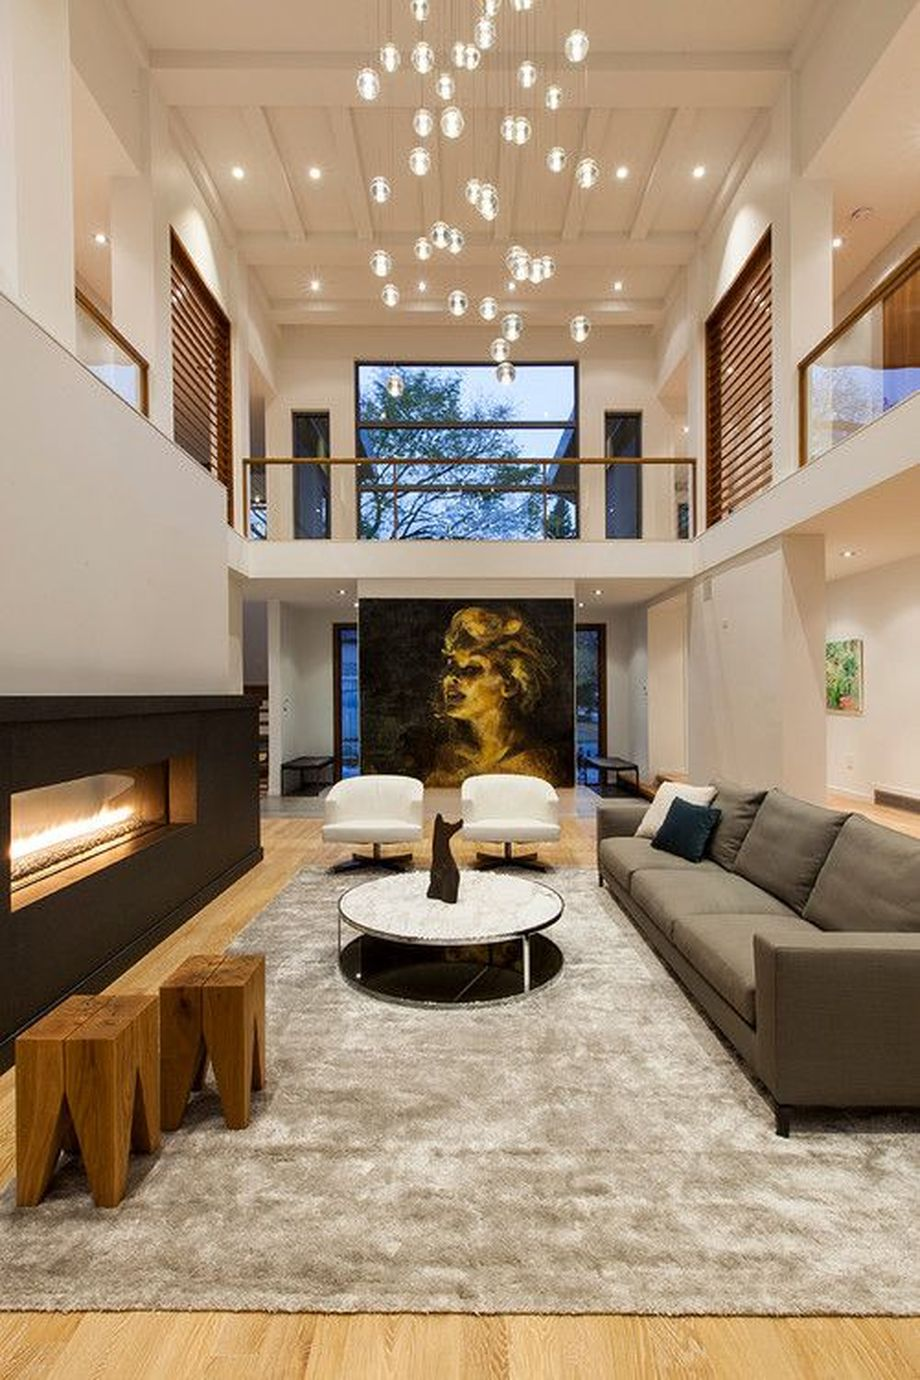 Luxury Living Room: 50 Magnificent Luxury Living Room Designs 36